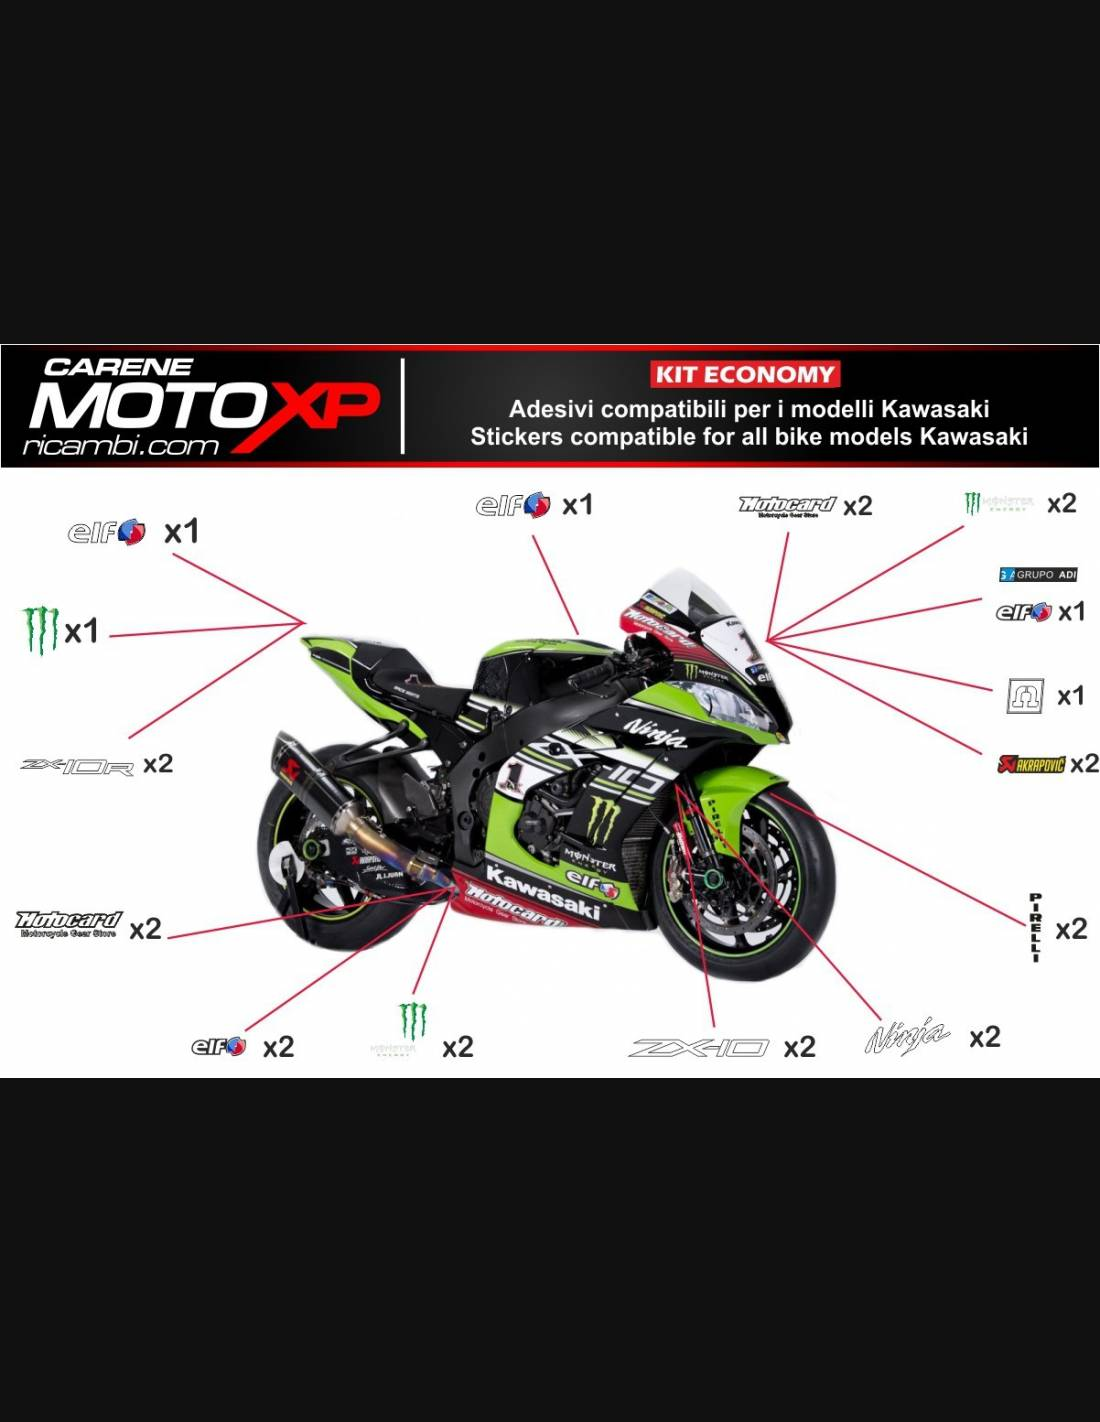 Auto Parts And Vehicles Zx 9r 2003 Ninja Full Decals